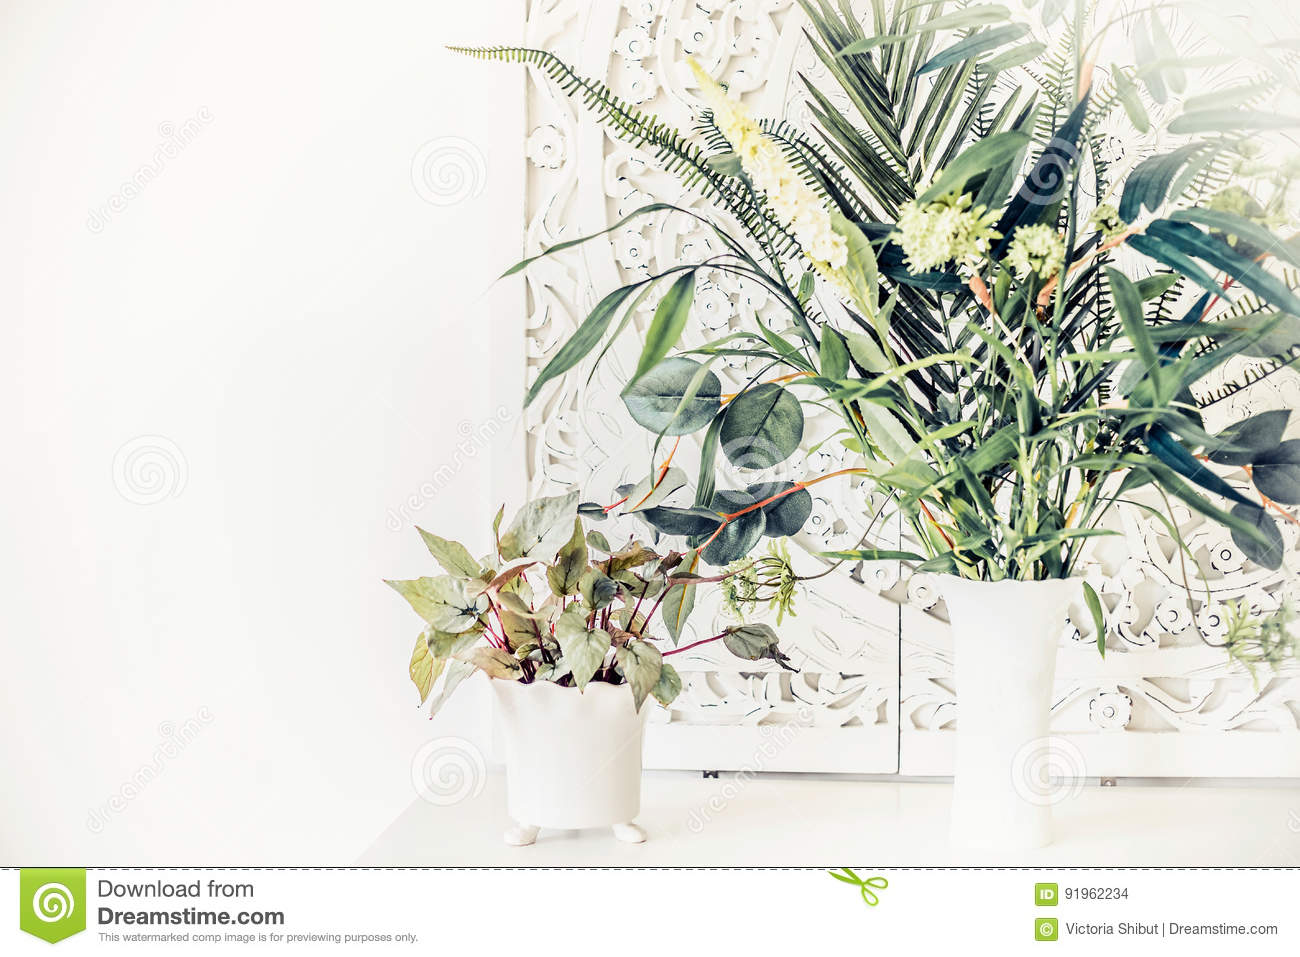 Pretty indoor plants on white table home interior stock photo download pretty indoor plants on white table home interior stock photo image of indoor mightylinksfo